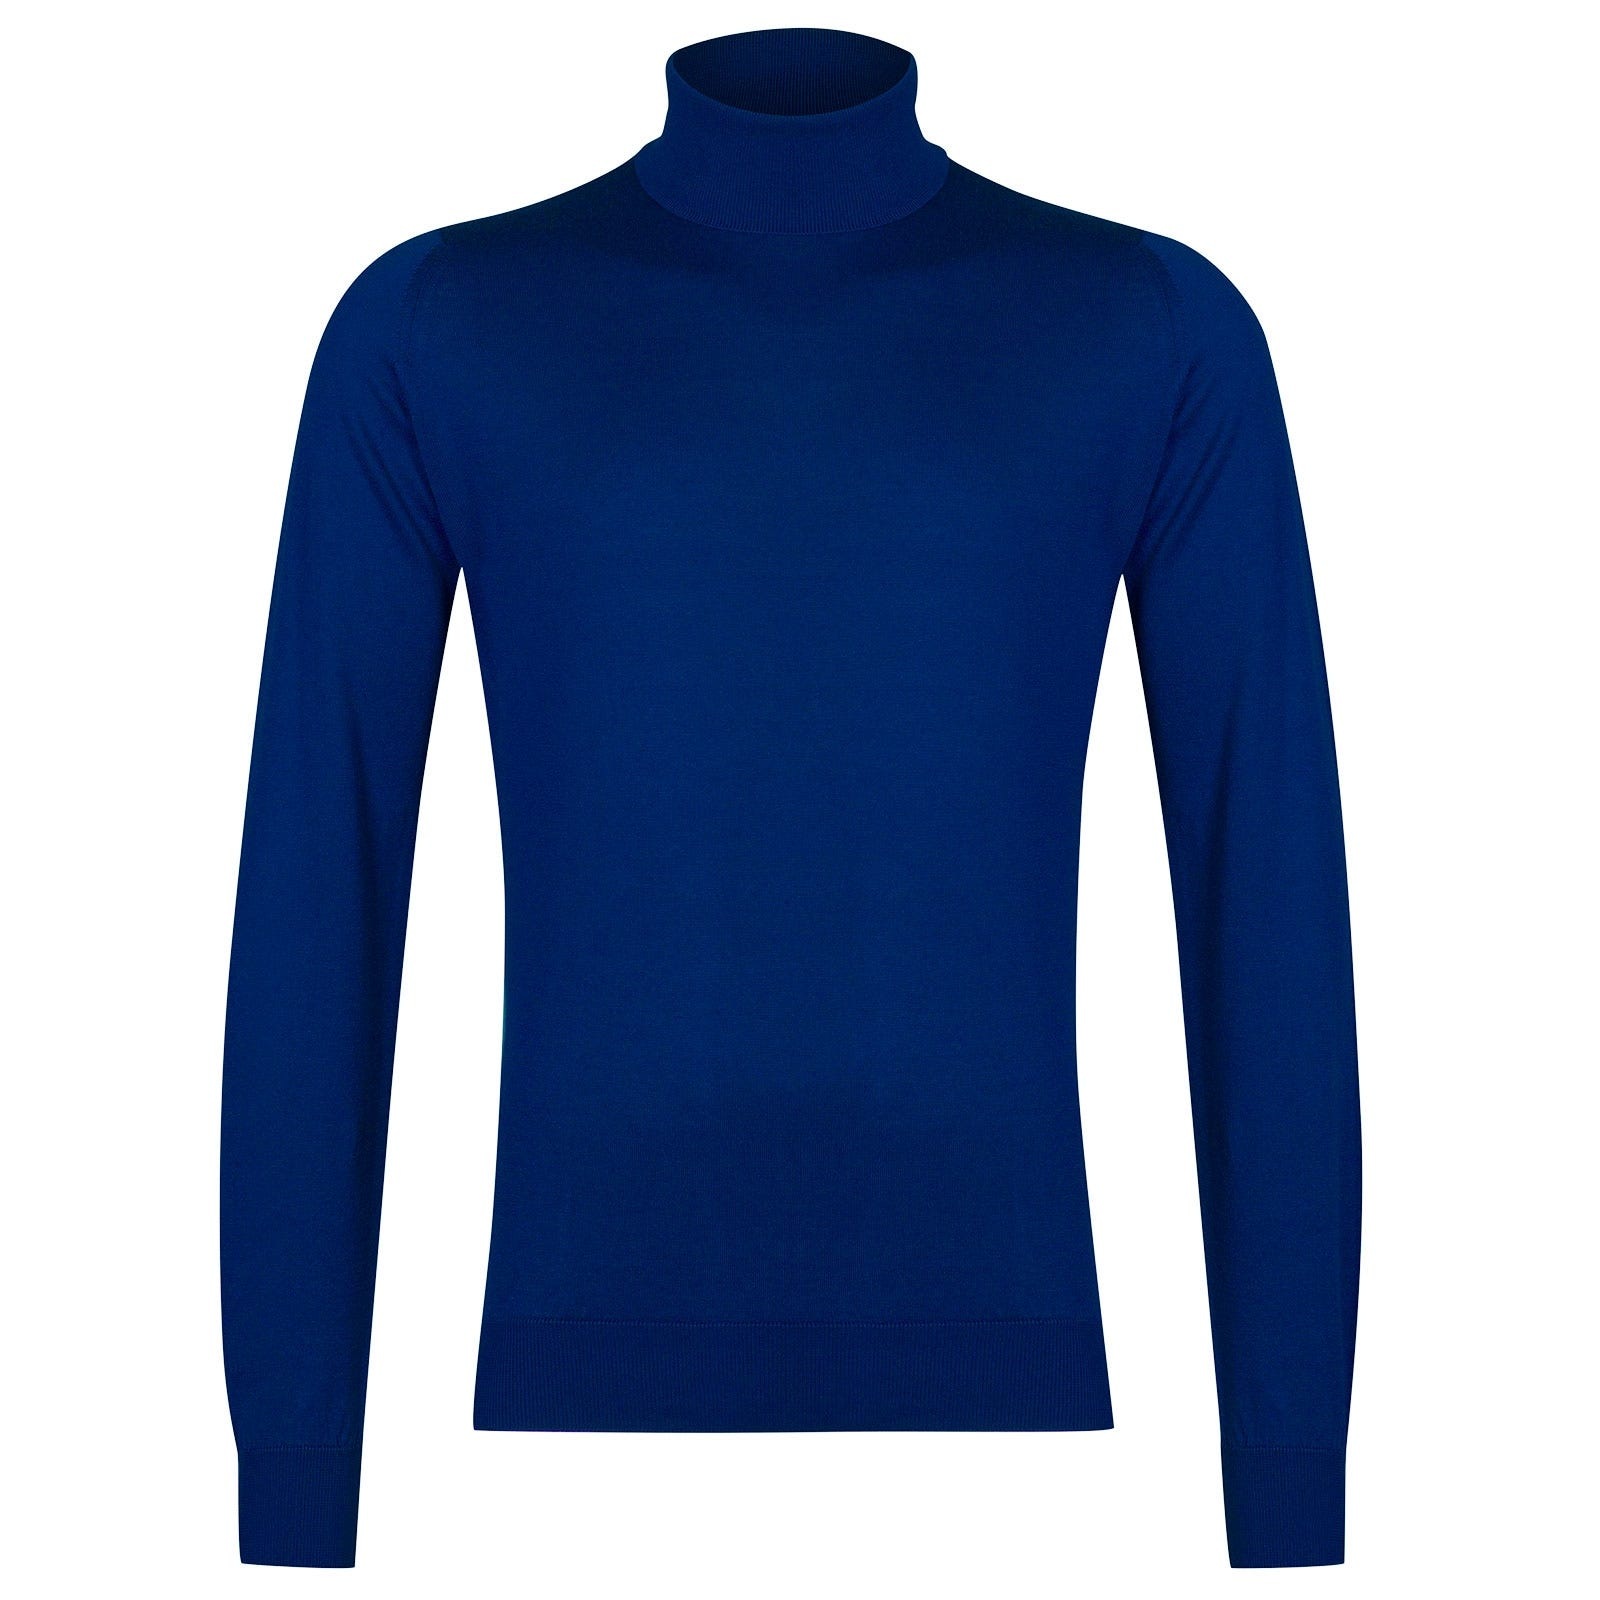 John Smedley Hawley Sea Island Cotton Pullover in Coniston Blue-XL